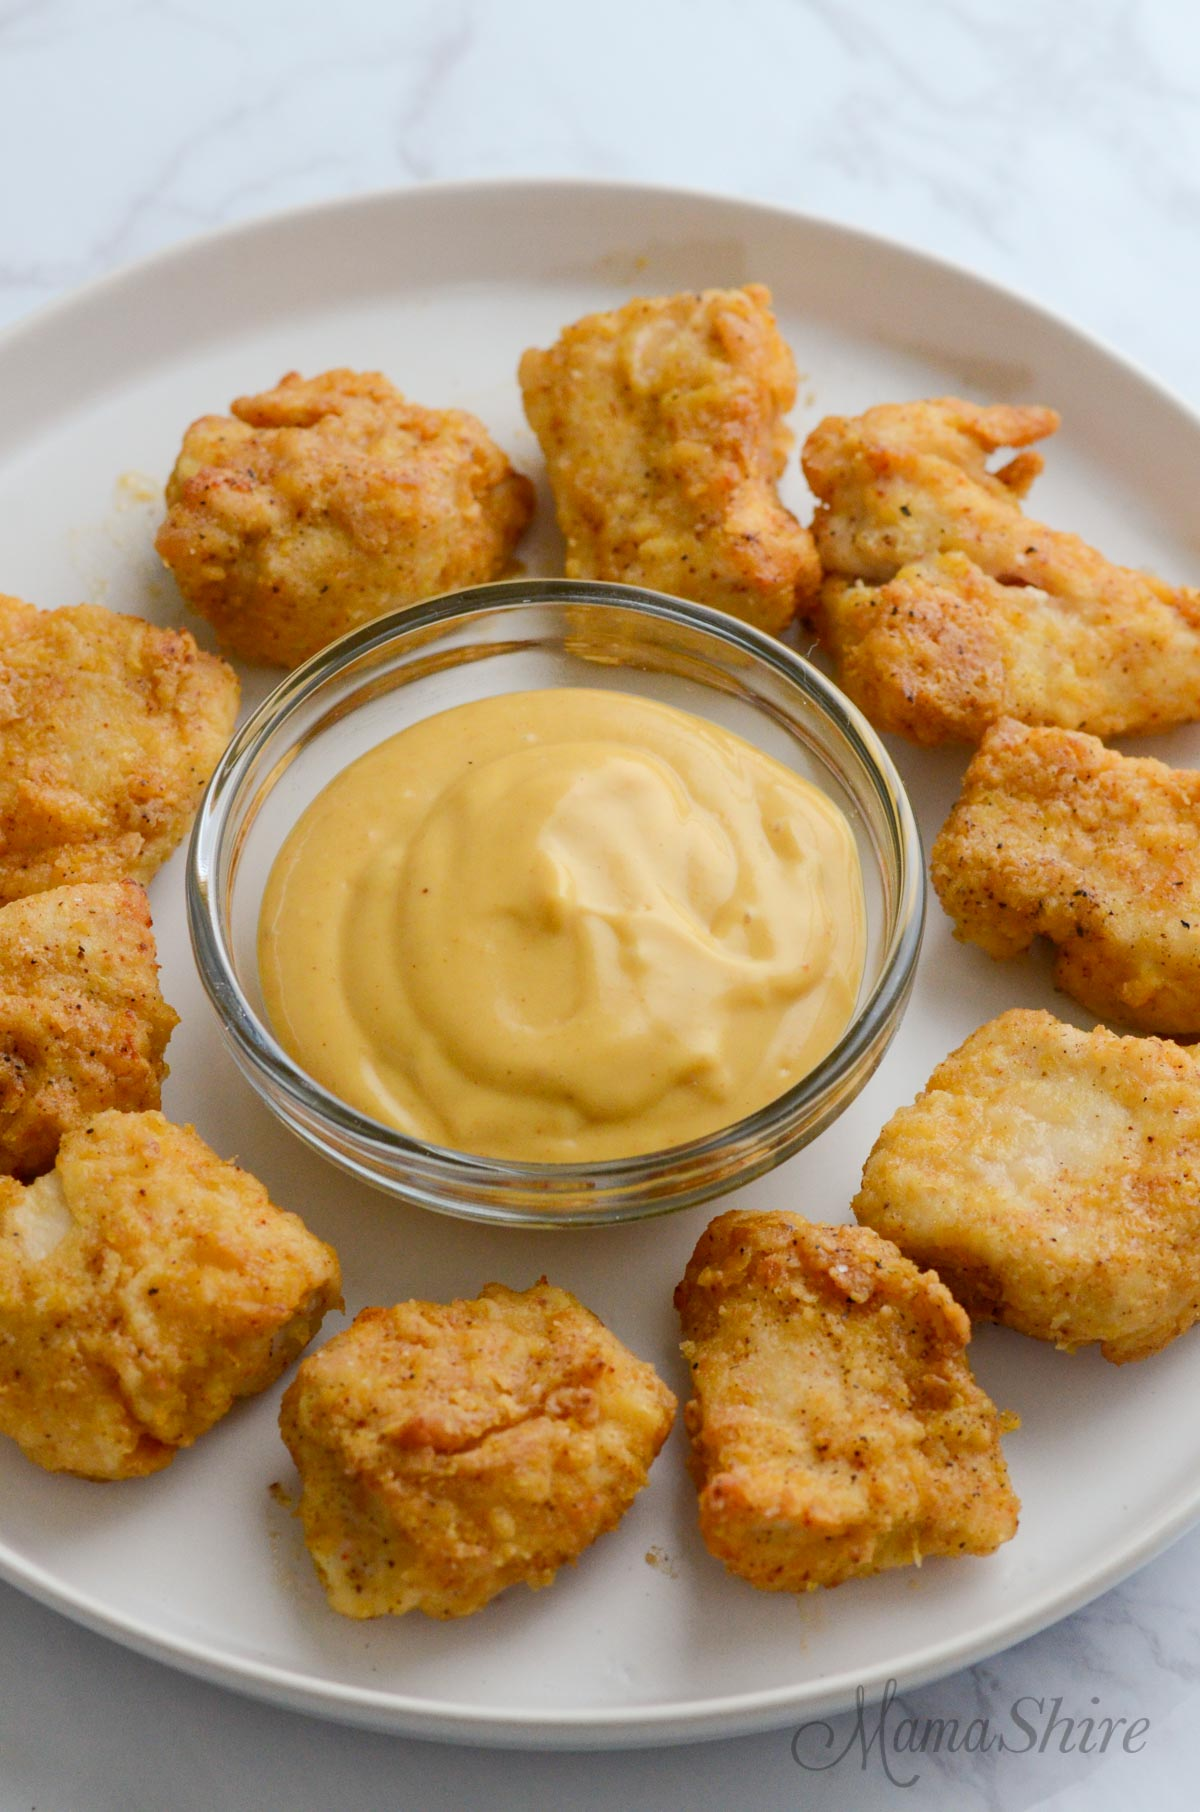 Homemade Chick-Fil-A Sauce with gluten-free chicken nuggets.